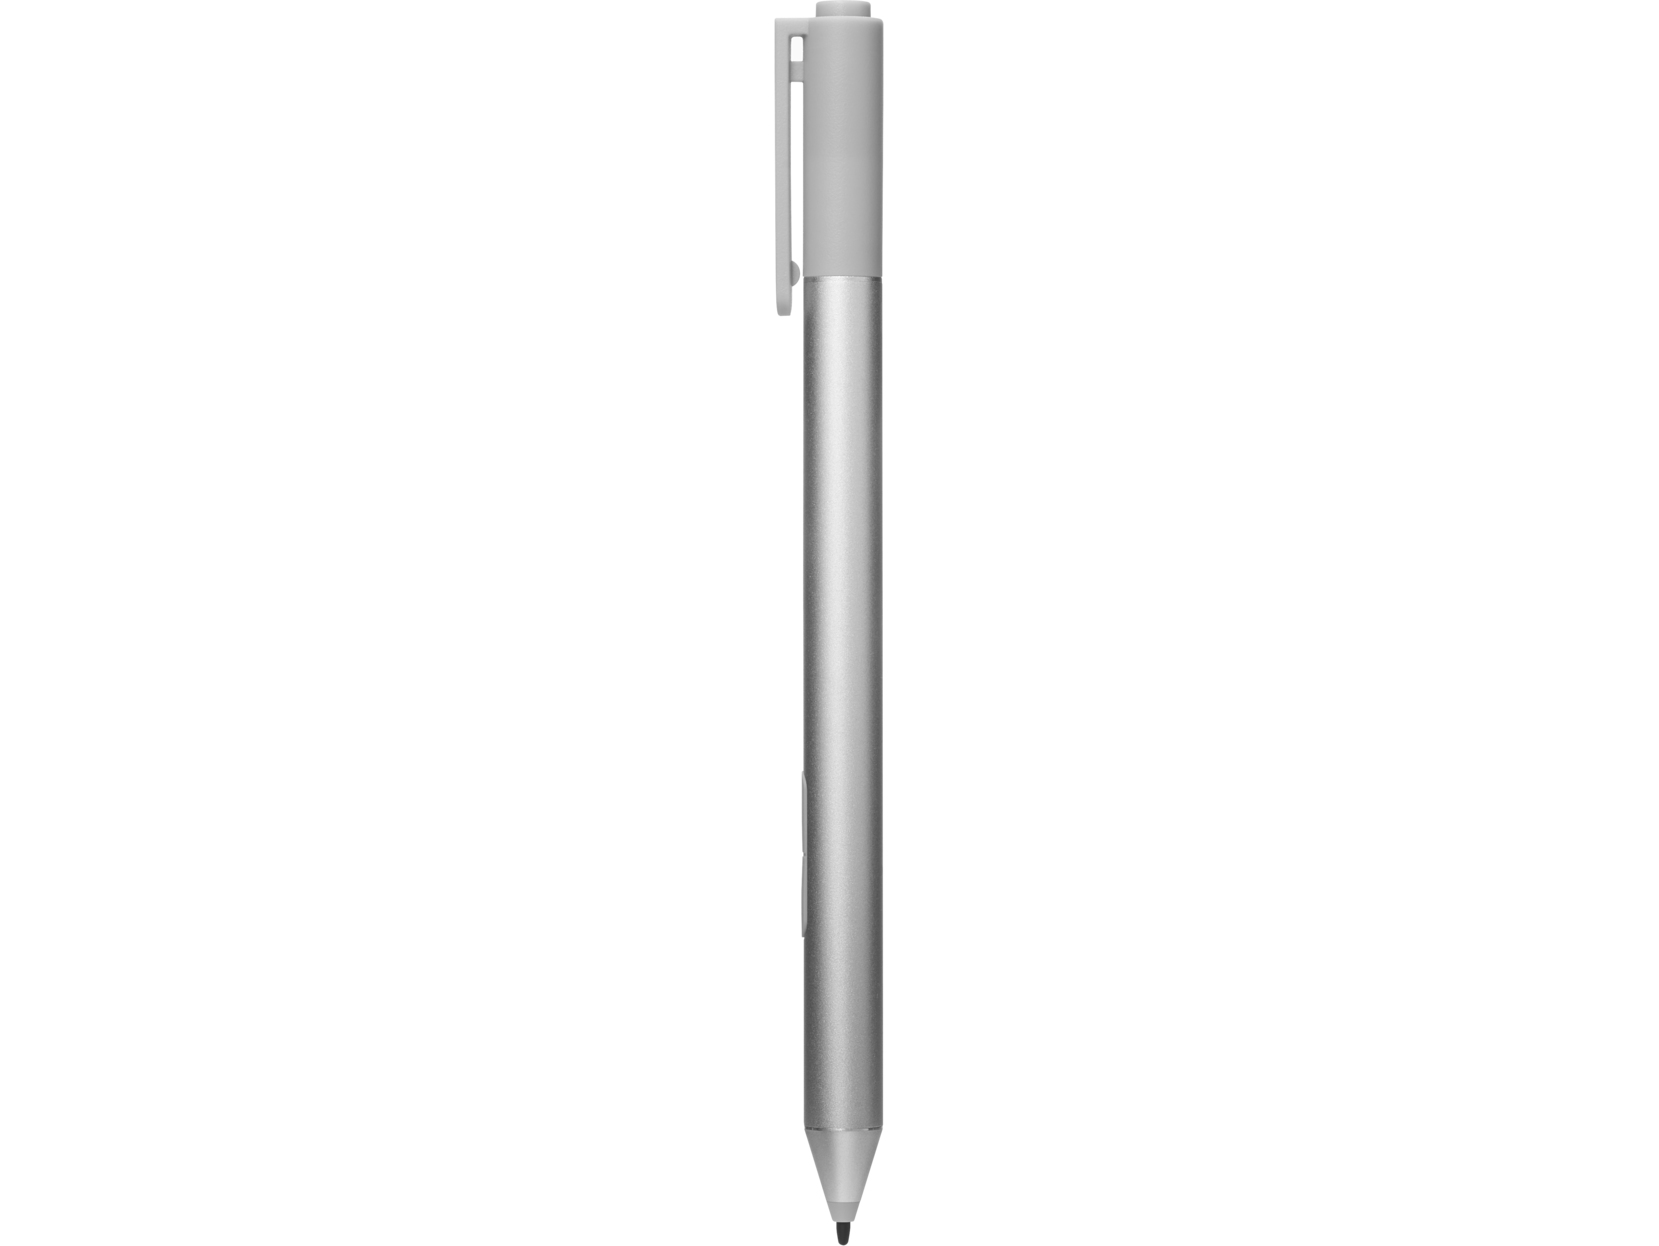 Hewlett Packard (HP) HP Active Pen with App Launch